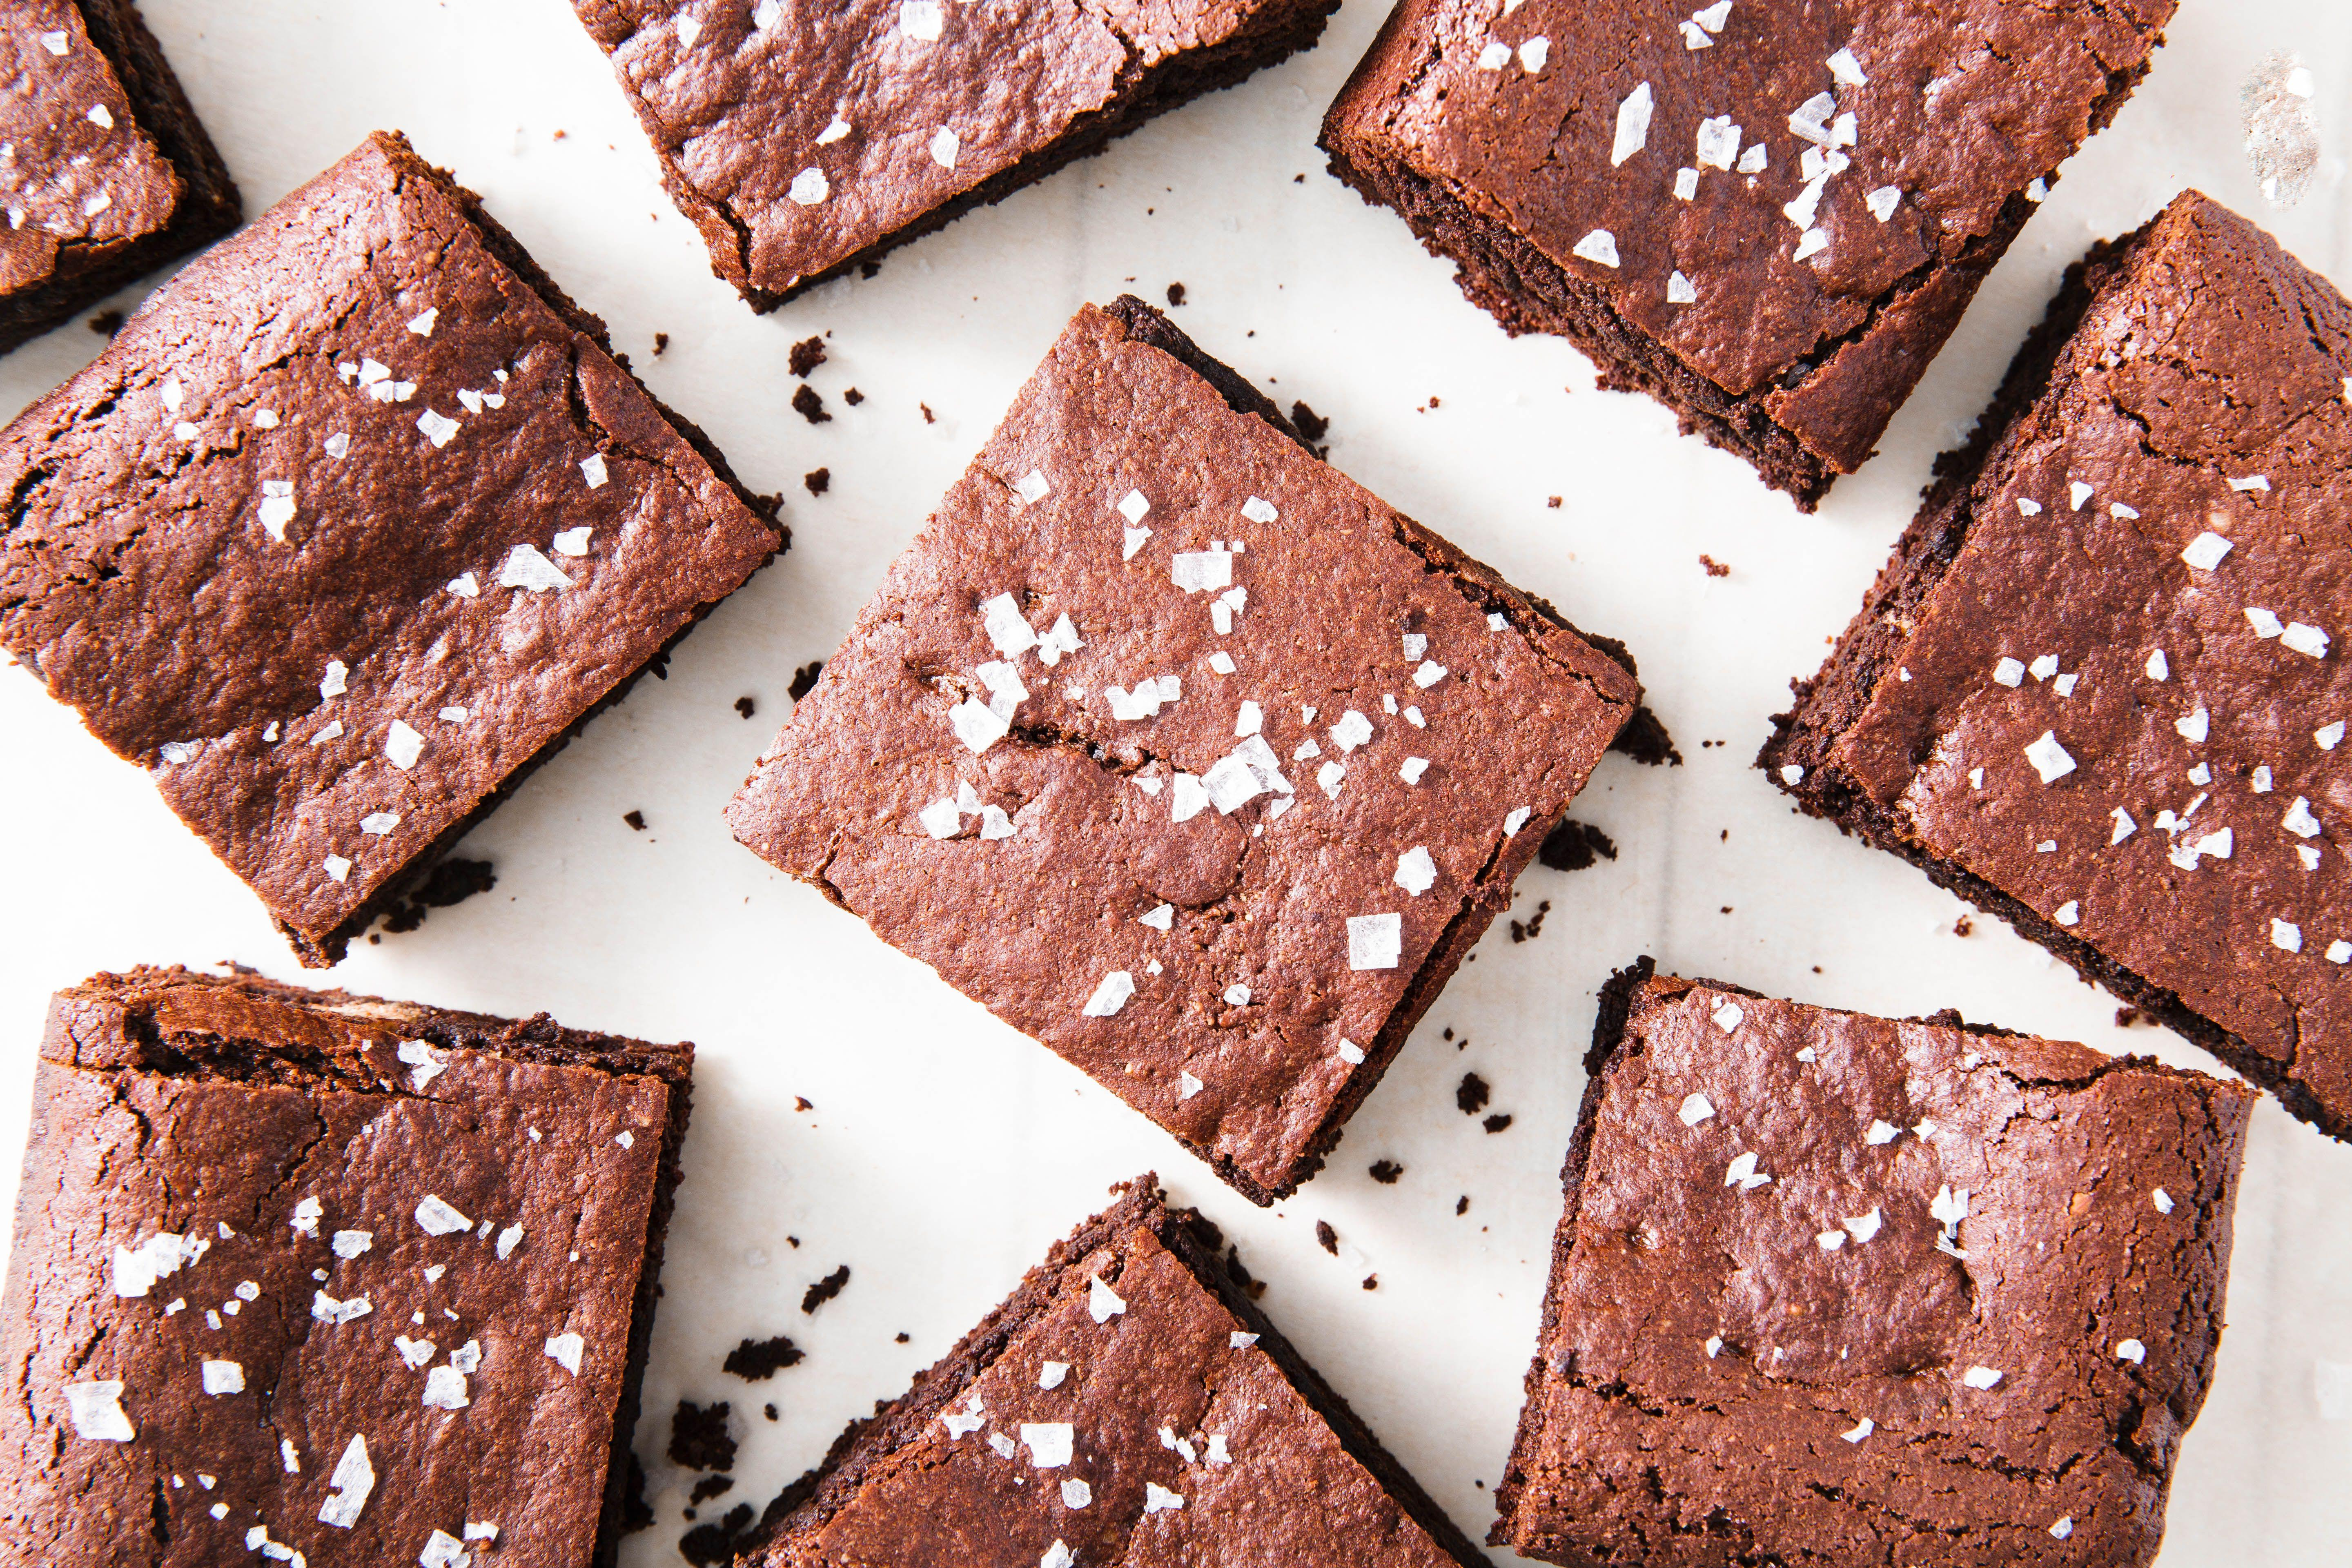 """<p>Real talk: You wouldn't even know these desserts were healthy if we didn't tell you. From brownies to cookies to cakes, these healthier desserts will get you through any sugar cravings. For more diet-approved low-calorie sweets, check out our best <a href=""""/cooking/nutrition/g3211/healthy-cookies/"""" data-ylk=""""slk:healthy cookies"""" class=""""link rapid-noclick-resp"""">healthy cookies</a>.</p>"""